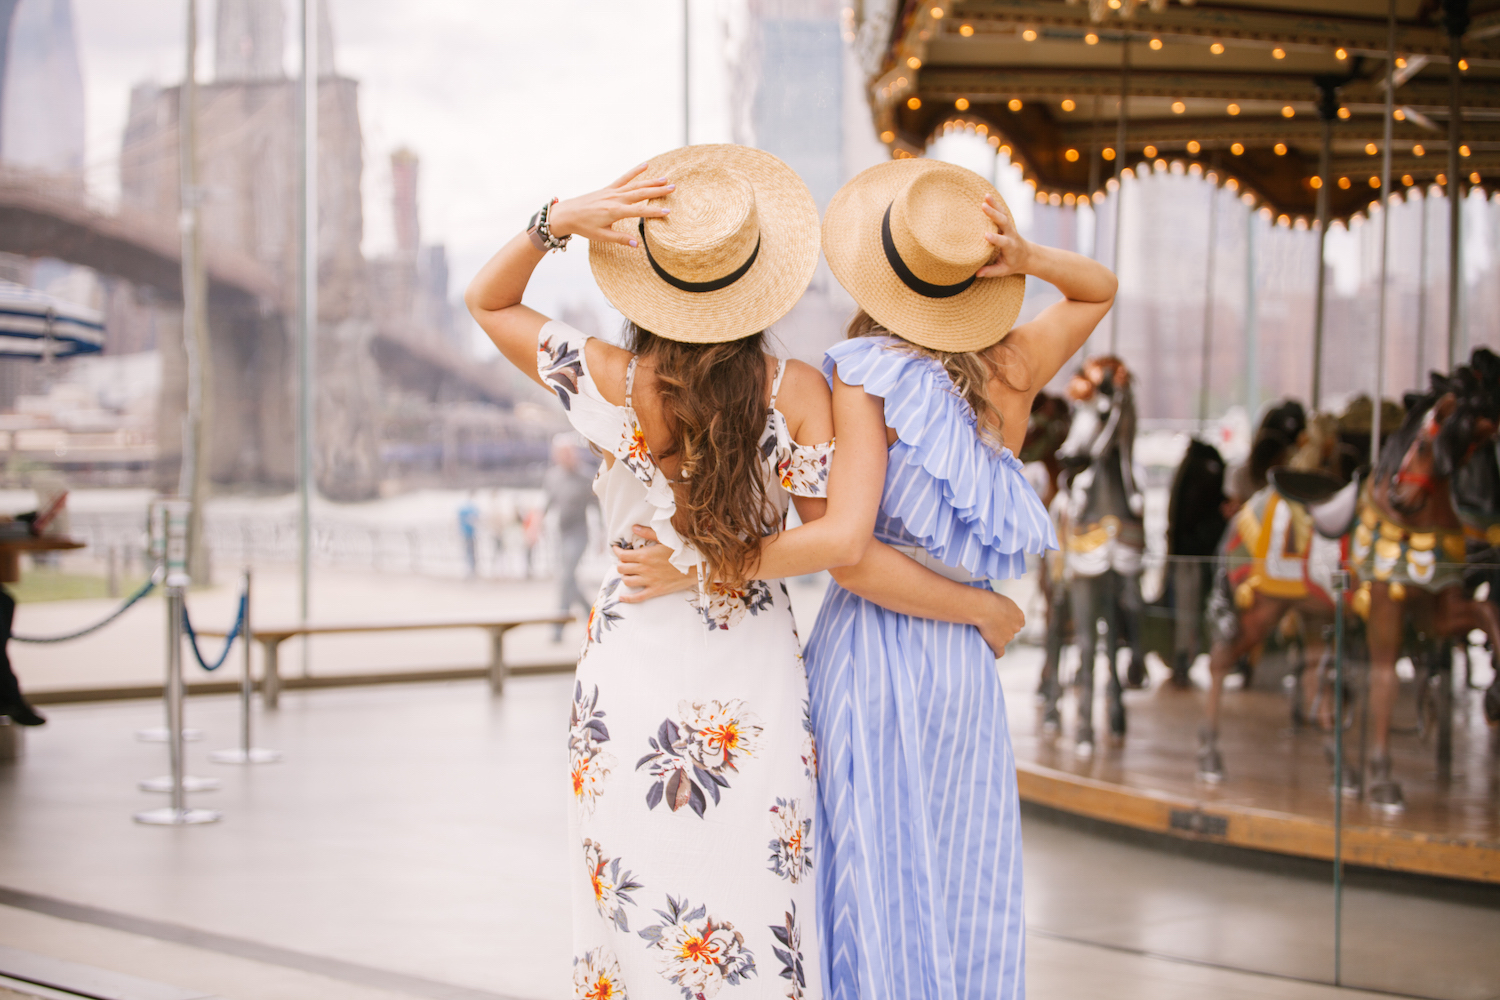 shein-collaboration-allbuenothings-sheinside-summer-dresses-nyc-blogger-trend